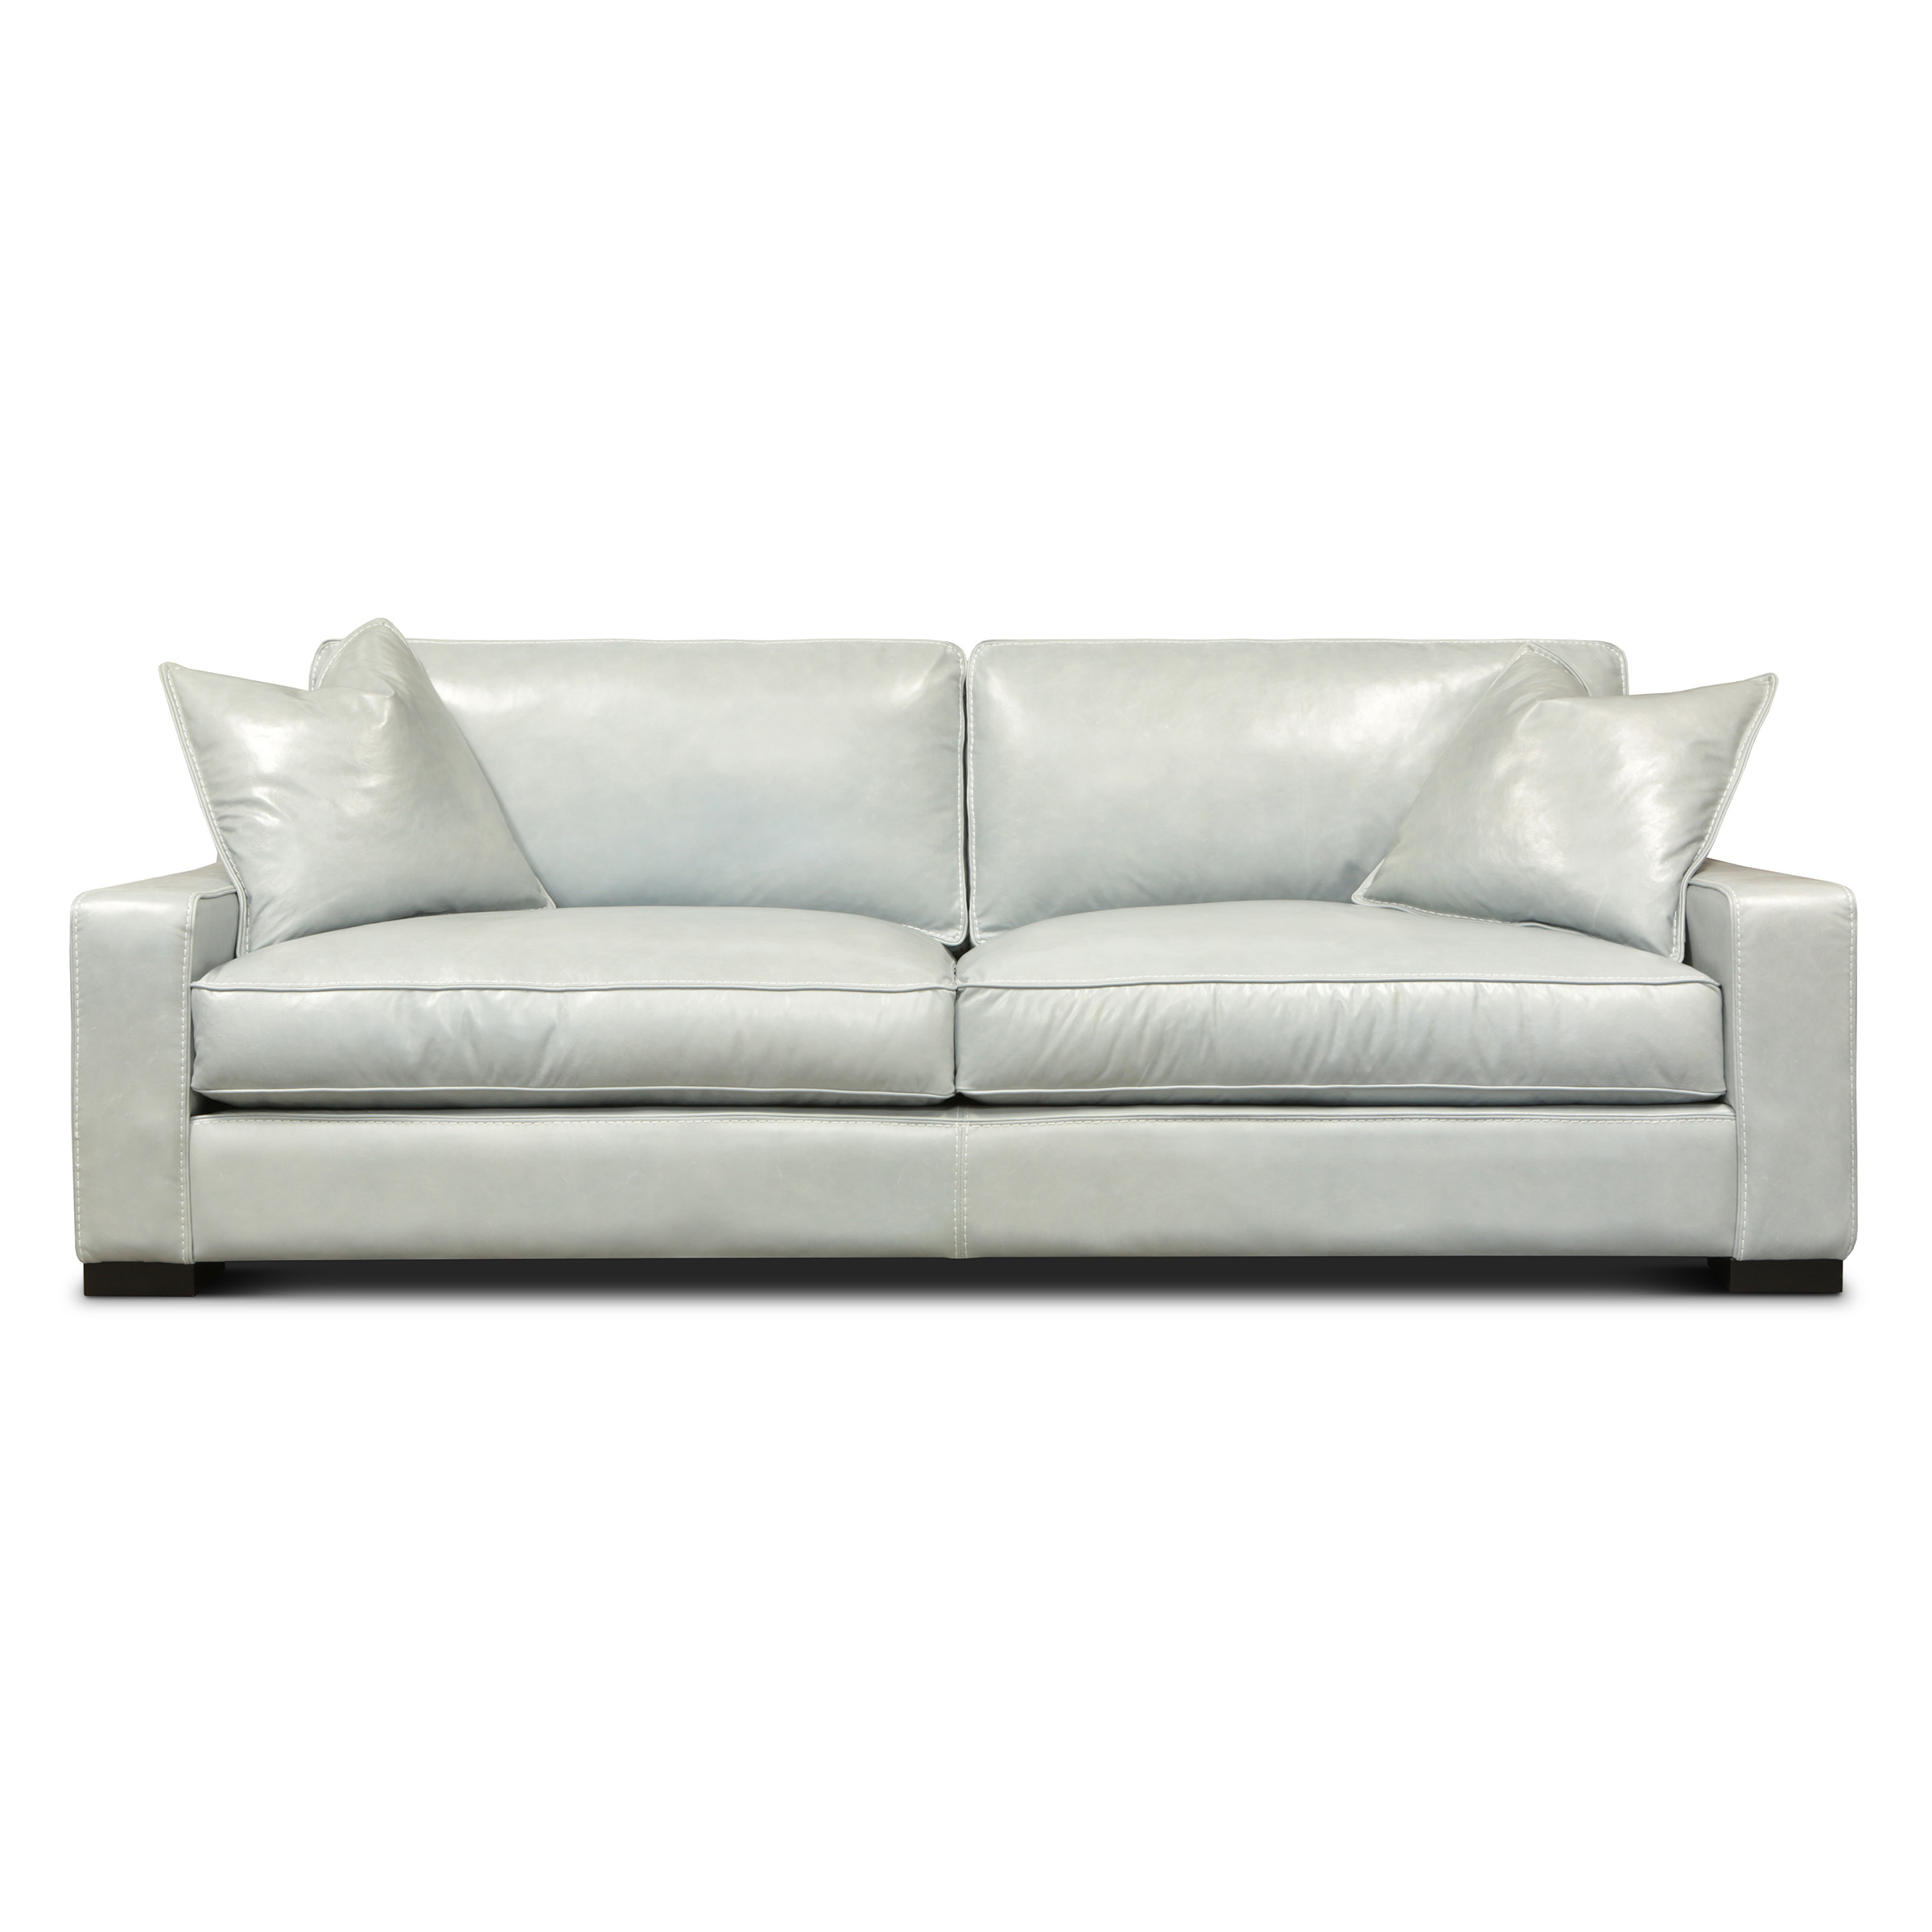 BUTTERCUP 30 SOFA CRISTAL BABY BLUE